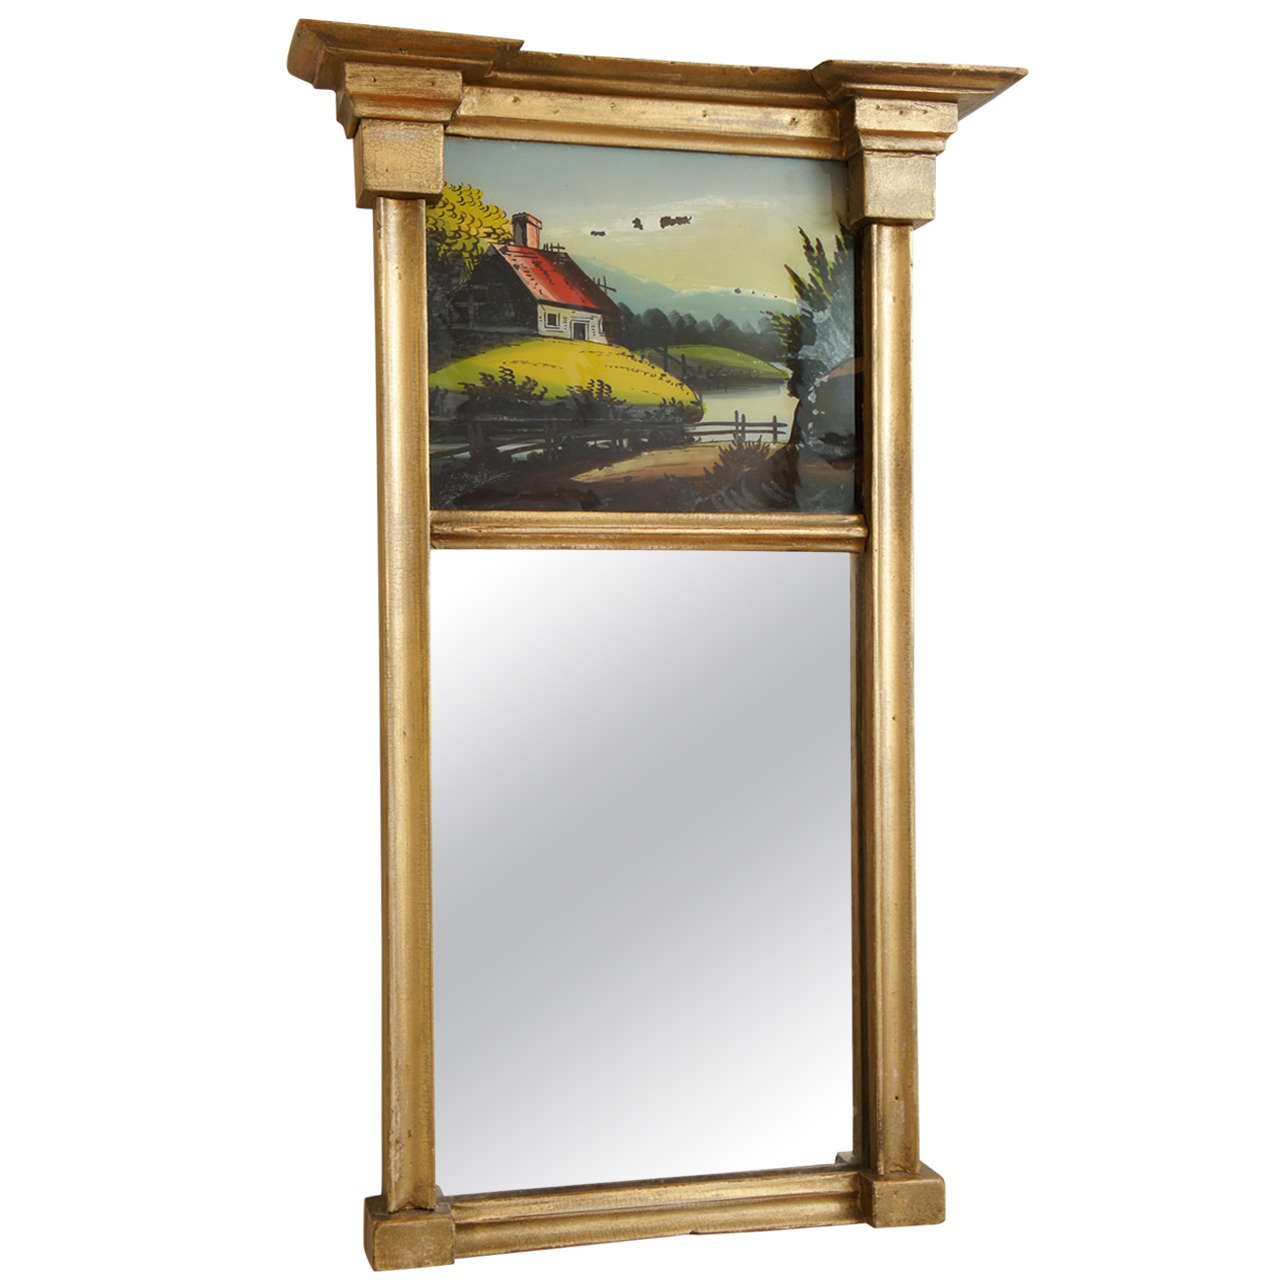 Mirror Hudson Valley Ny With Reverse Painting On Glass